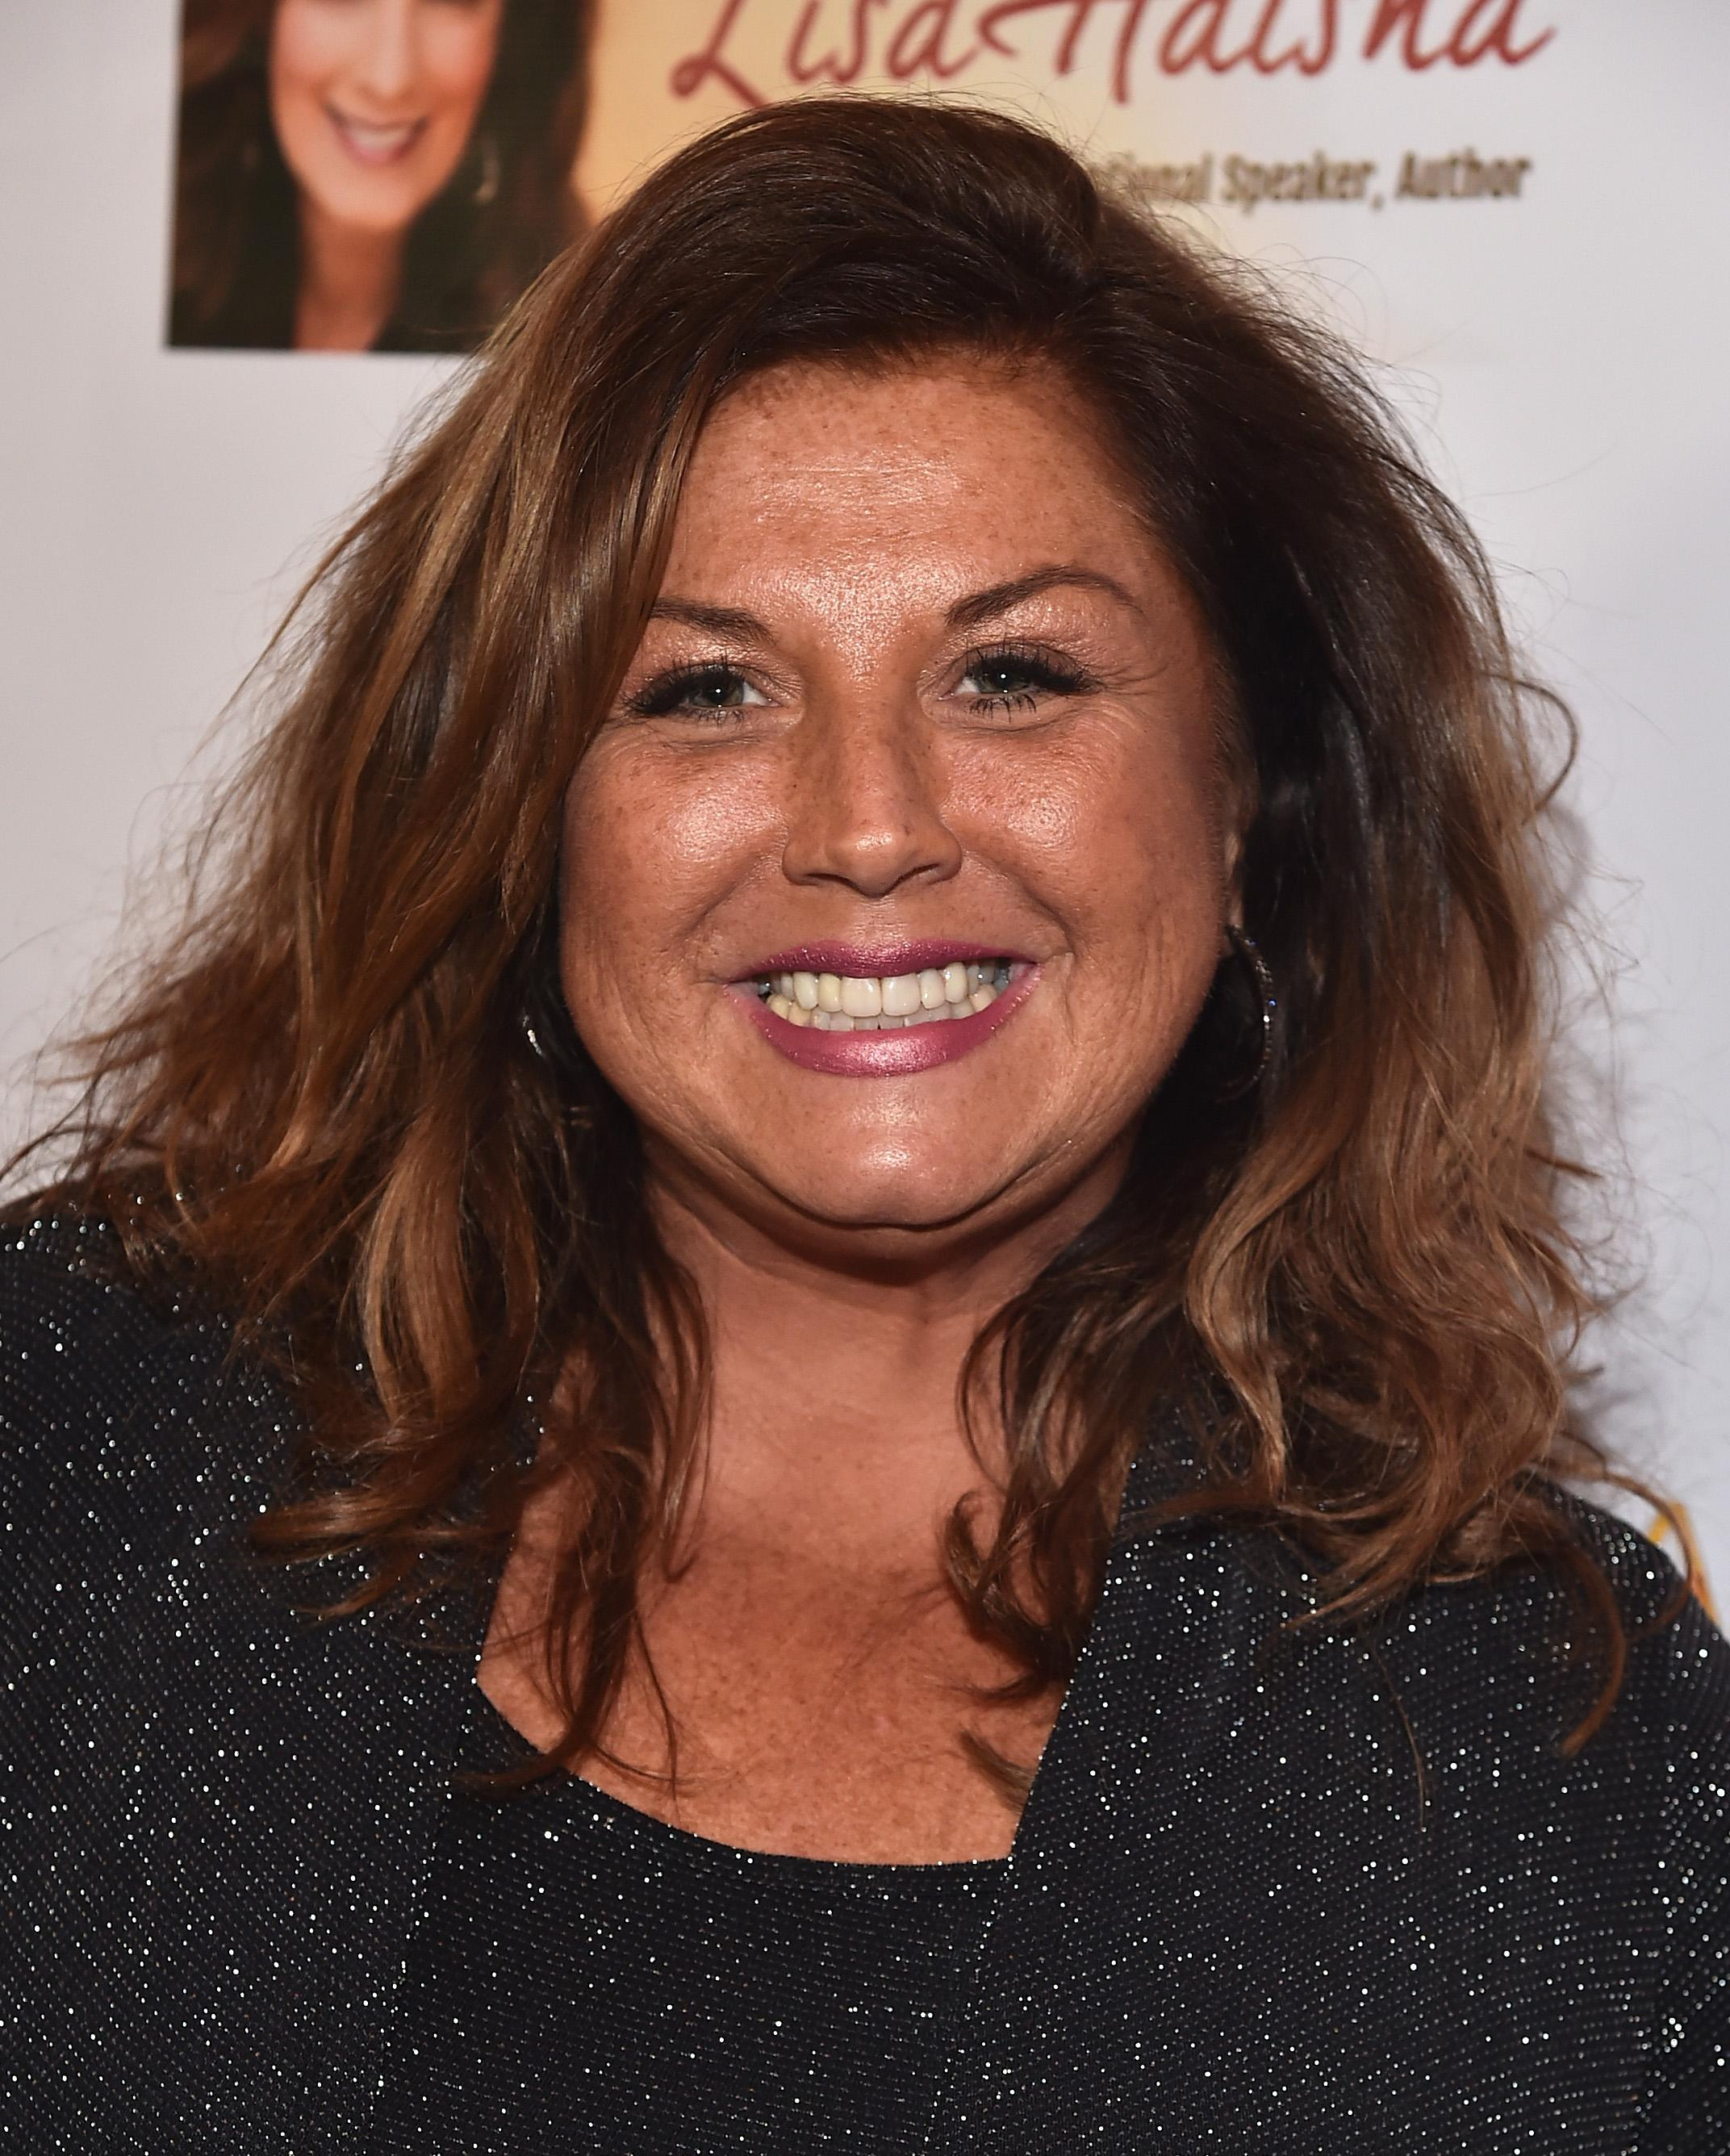 abby lee miller - photo #12